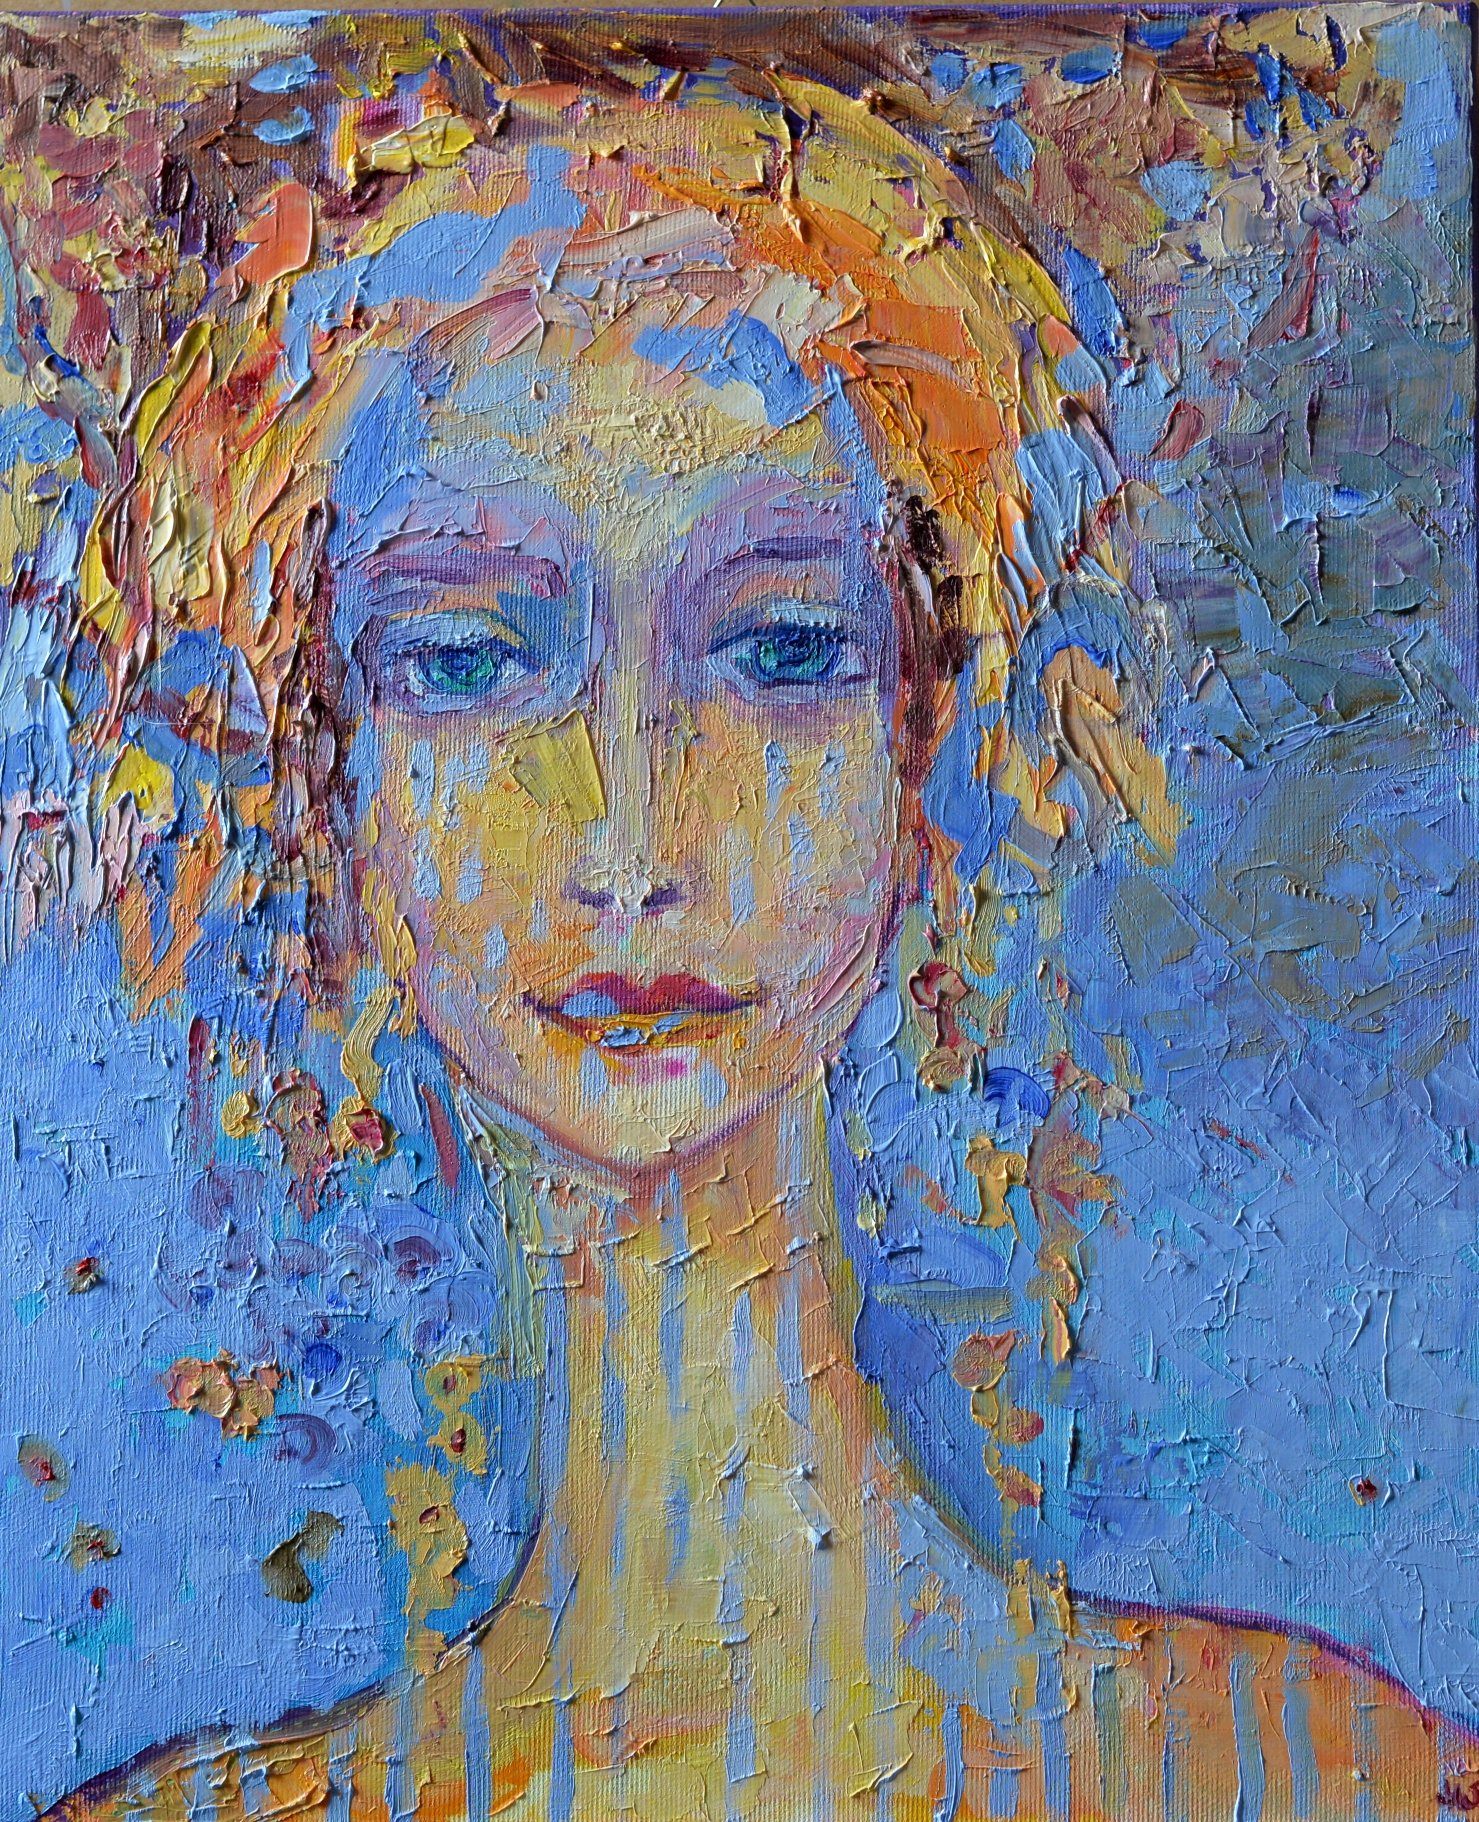 Women artwork Female figure Head Face Impasto Textured ON CANVAS 15x18 Woman painting Original hand painted oil Living Room Fine art work Abstract figurative by SmartPolonia